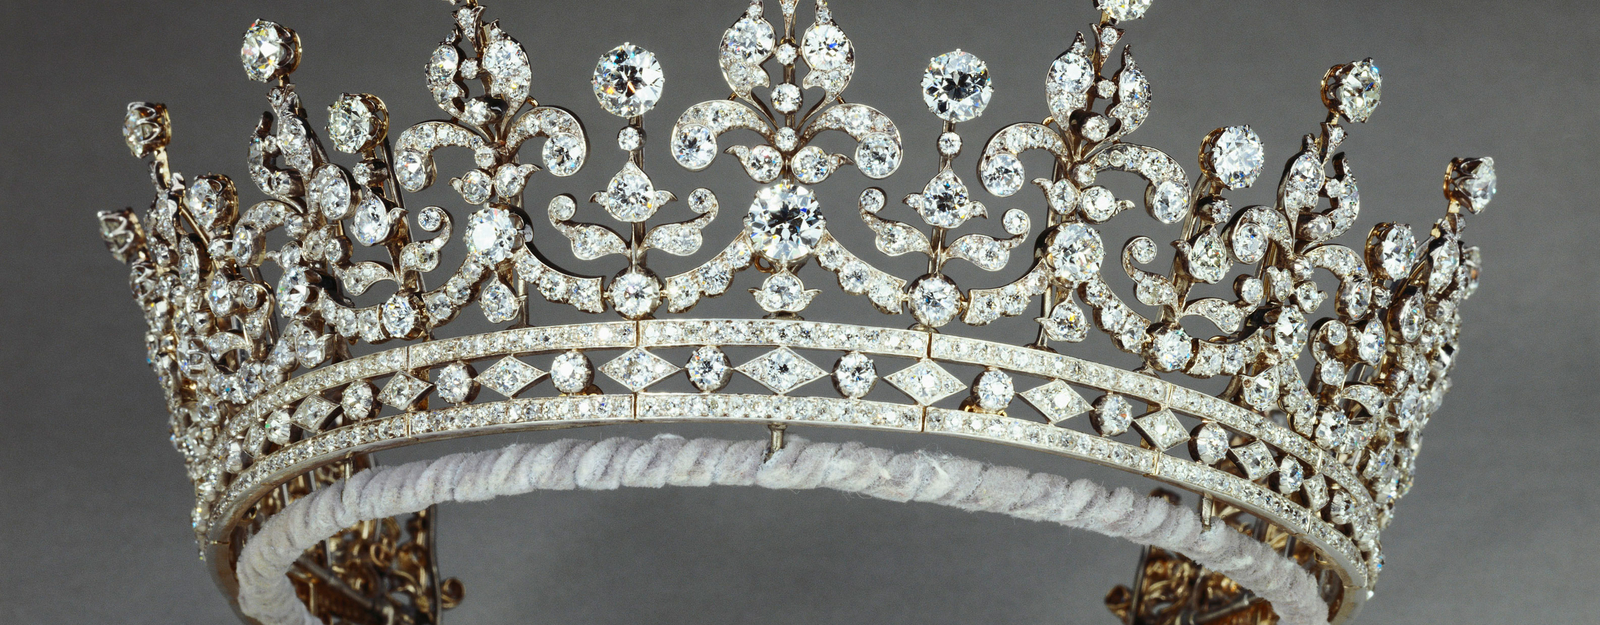 Tiara from the Diamonds: A Jubilee Celebration exhibition